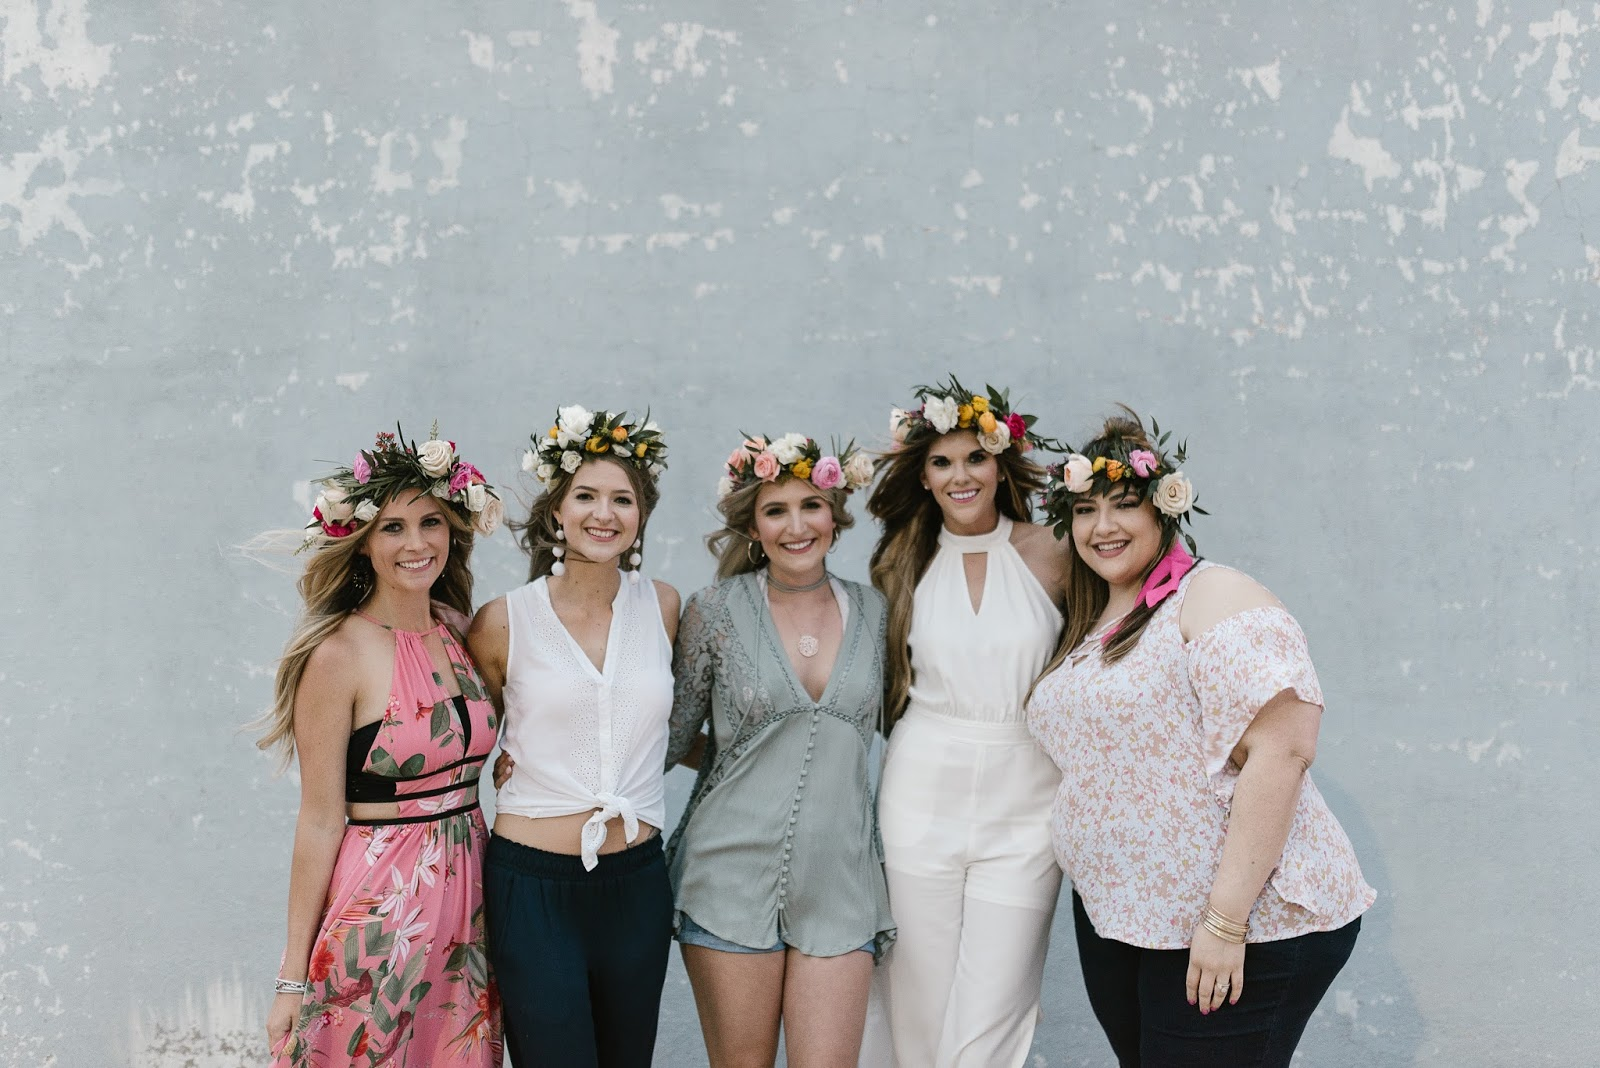 Cocktails + Crowns // Flower Crown Party   beautywithlily.com